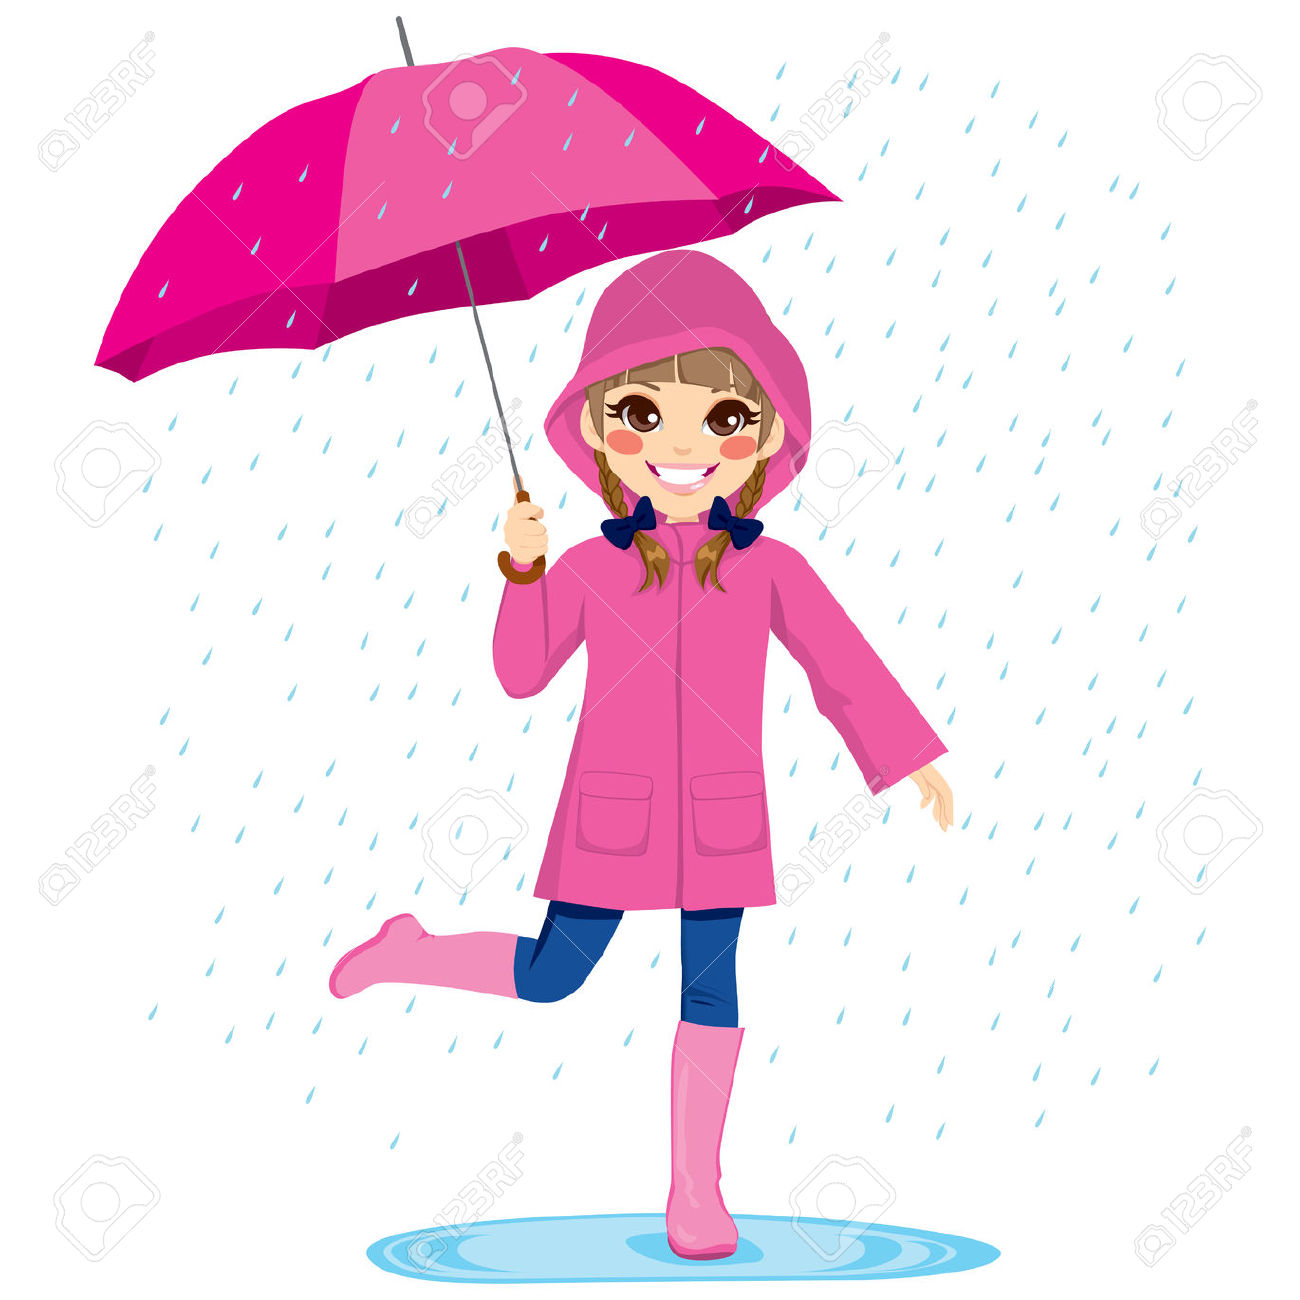 little girl with umbrella clipart - Clipground